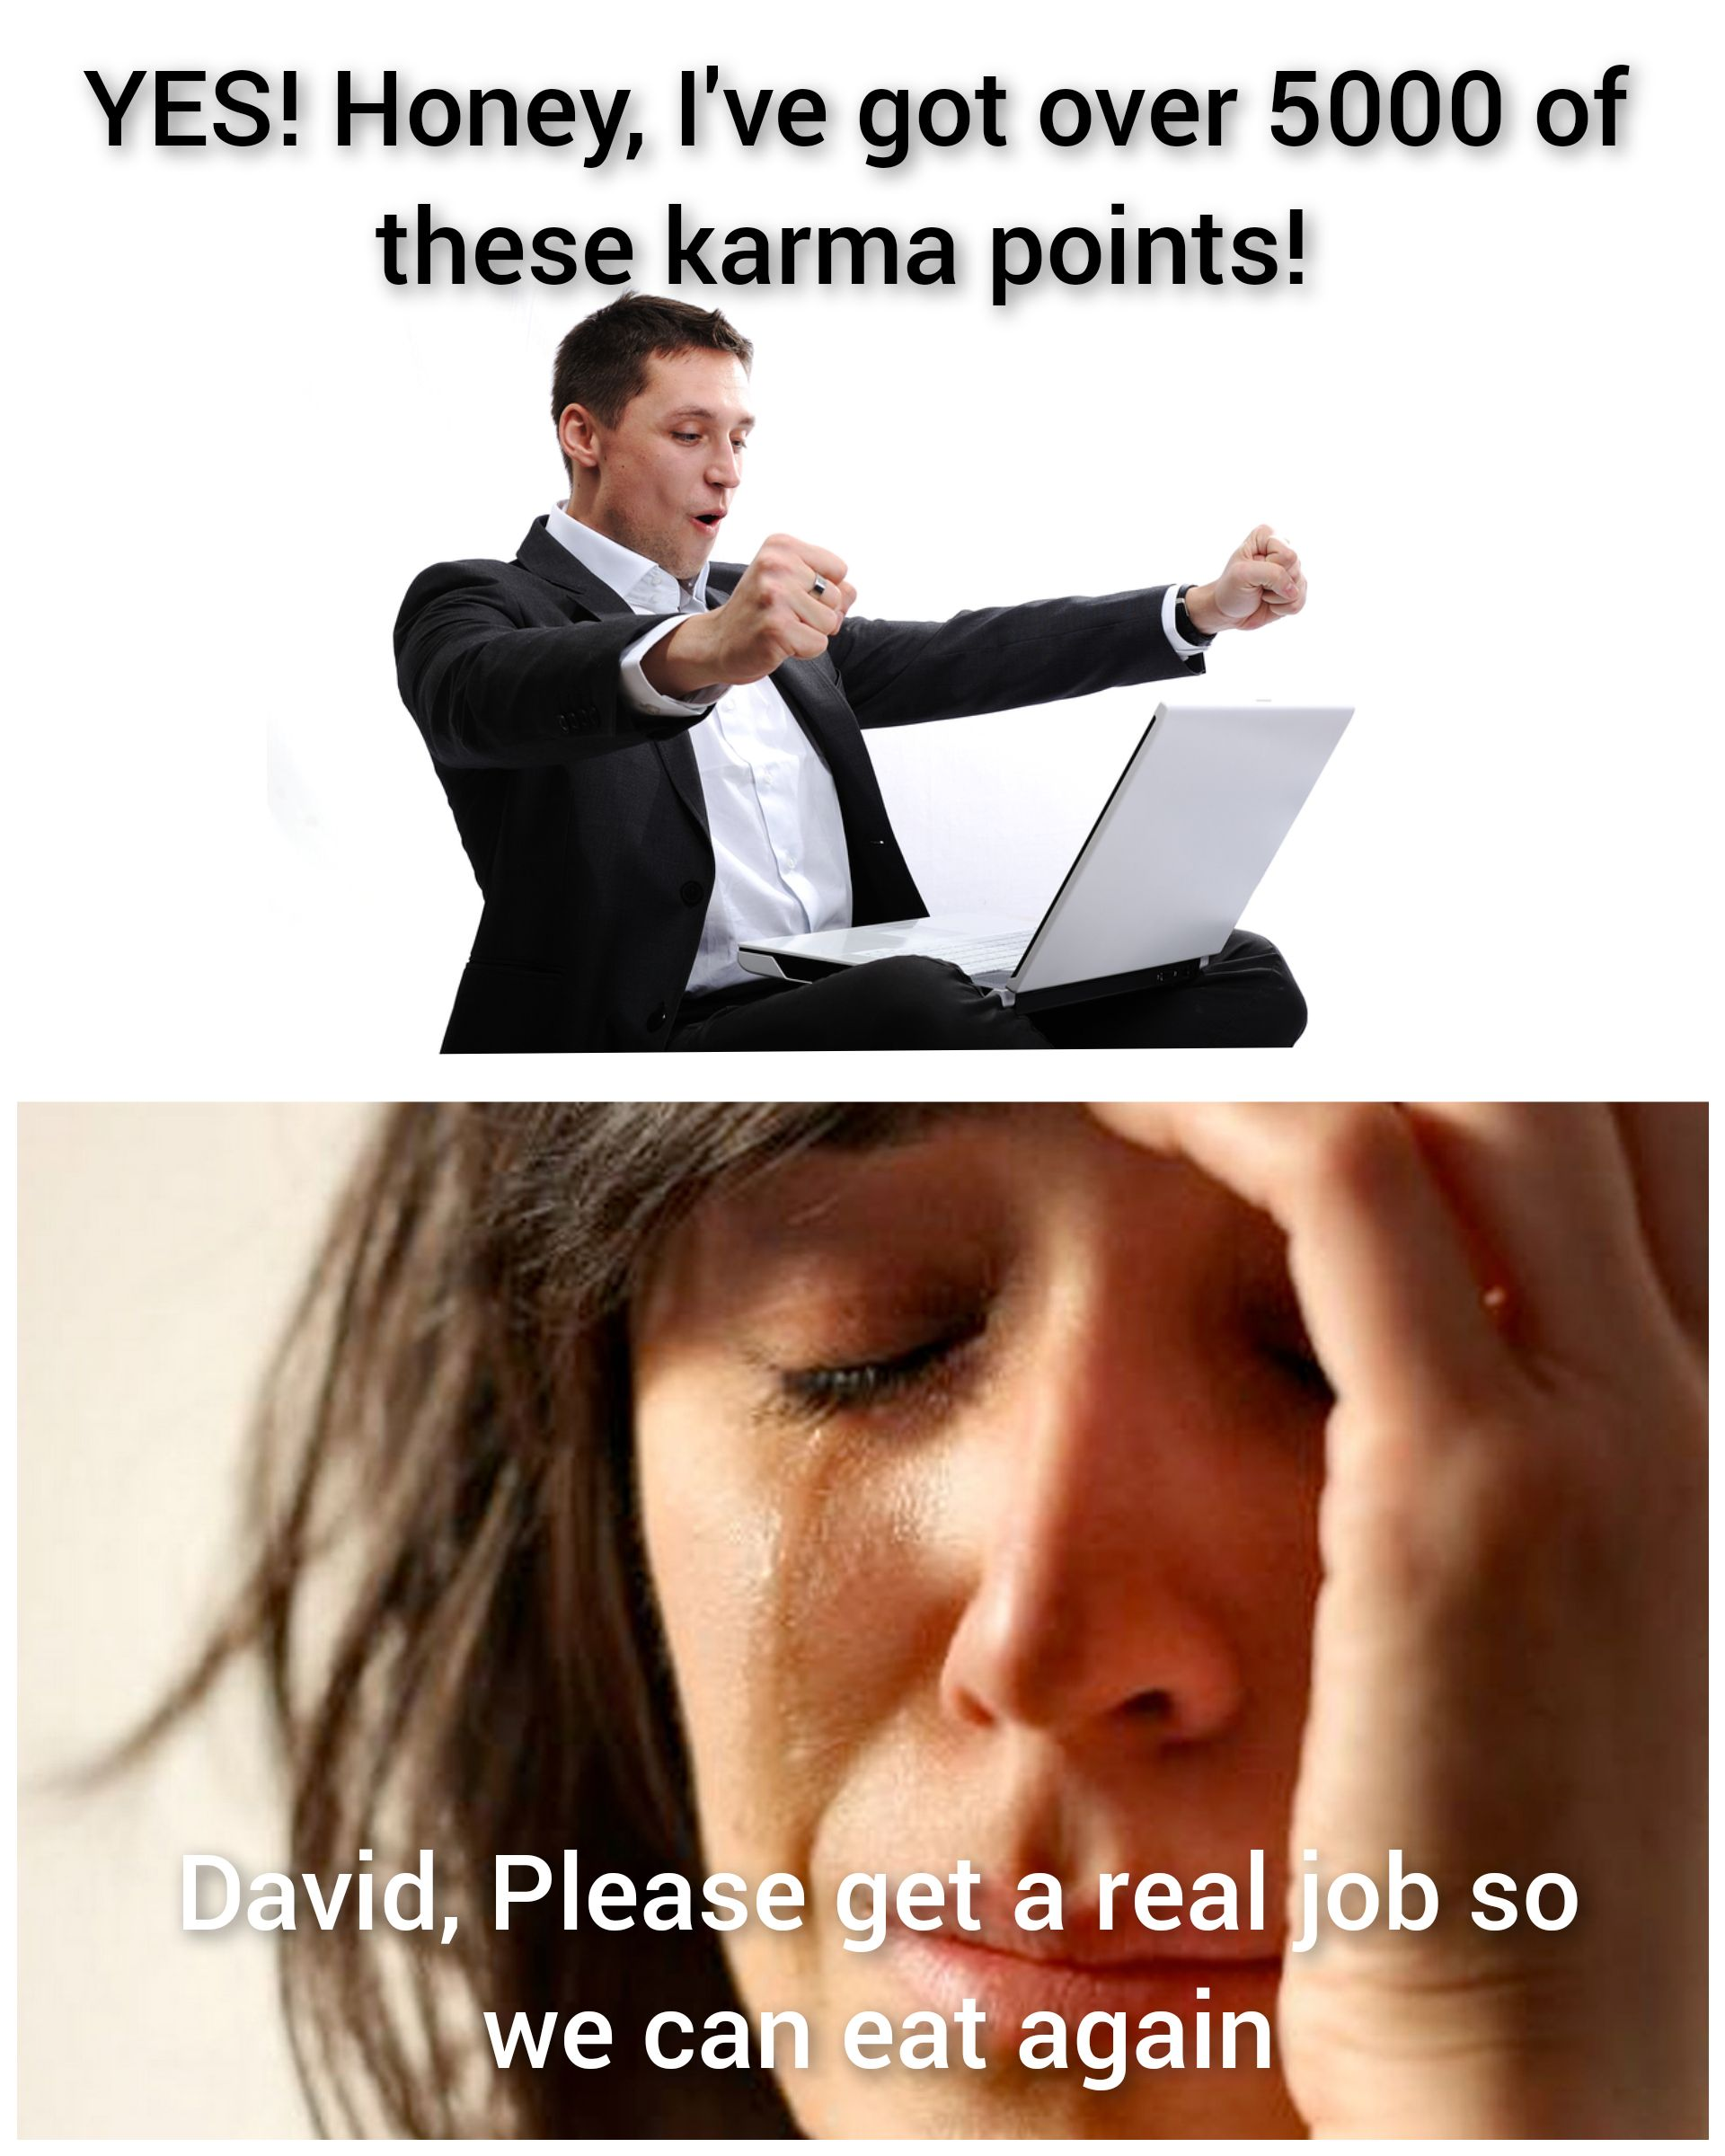 Mods can relate